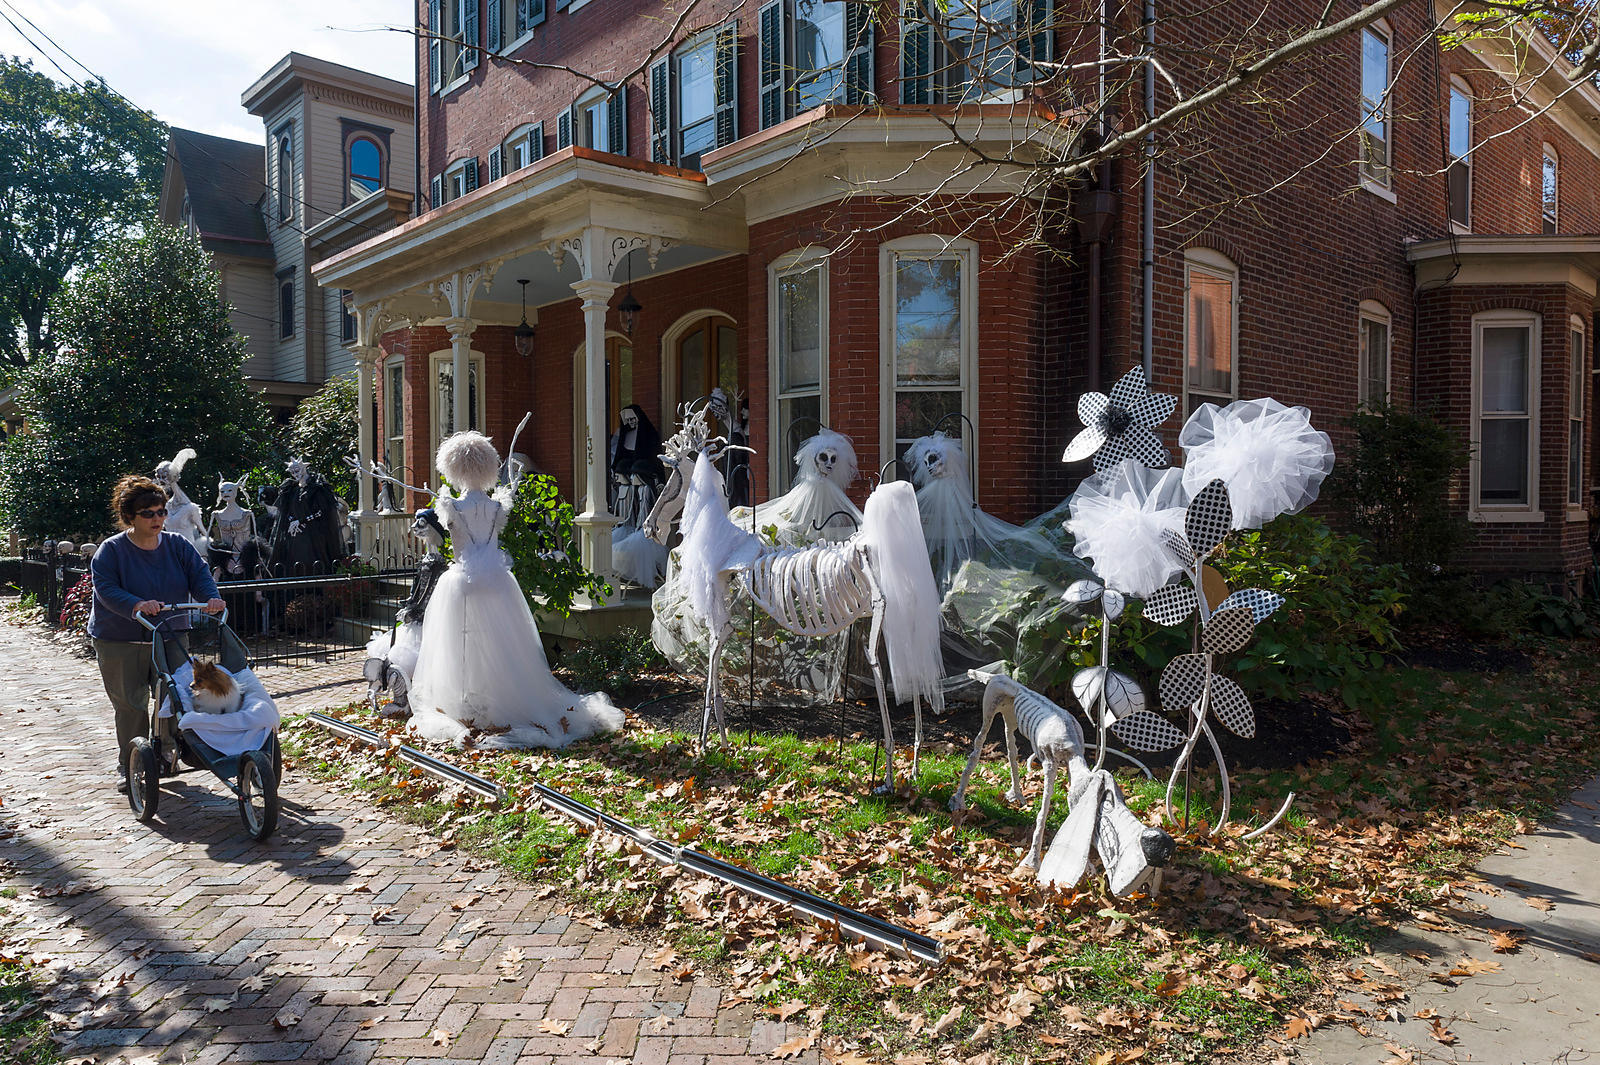 halloween in lambertville haunted yard halloween decor - Homemade Halloween Decorations For Yard